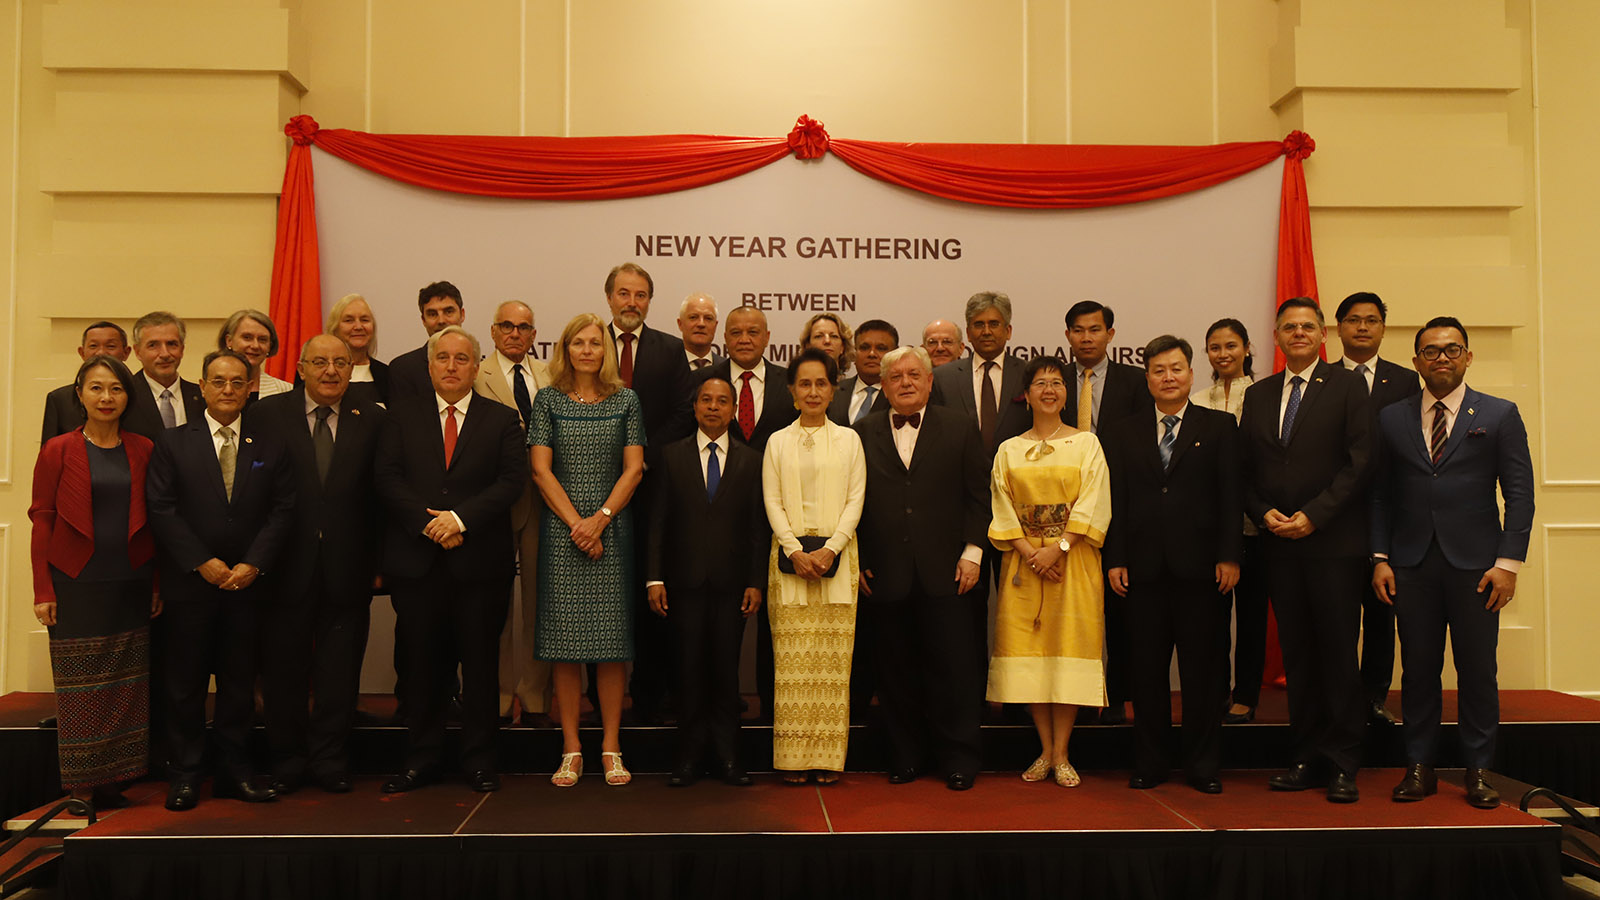 State Counsellor Daw Aung San Suu Kyi and Ambassador of Timor-Leste Mr Joao Freitas de Camara pose for a group photo together with diplomatic corps at the luncheon to commemorate New Year and the 72nd Anniversary of the Independence Day of the Republic of the Union of Myanmar in Nay Pyi Taw on 3 January 2020.Photo: MNA